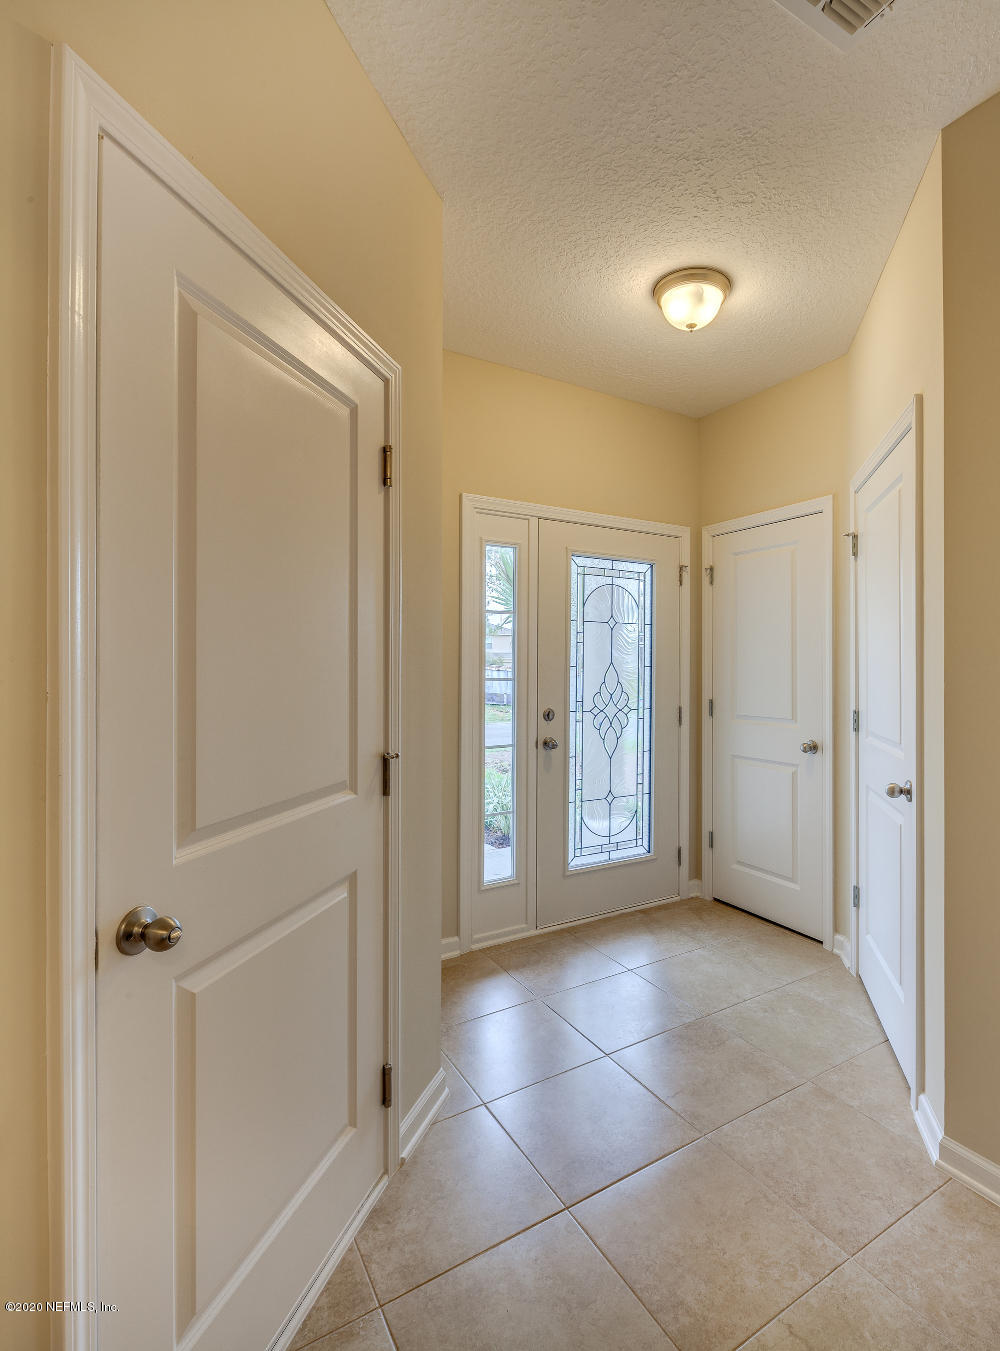 95 Cottage Link, ST AUGUSTINE, FLORIDA 32092, 3 Bedrooms Bedrooms, ,2 BathroomsBathrooms,Residential,For sale,Cottage Link,1056592